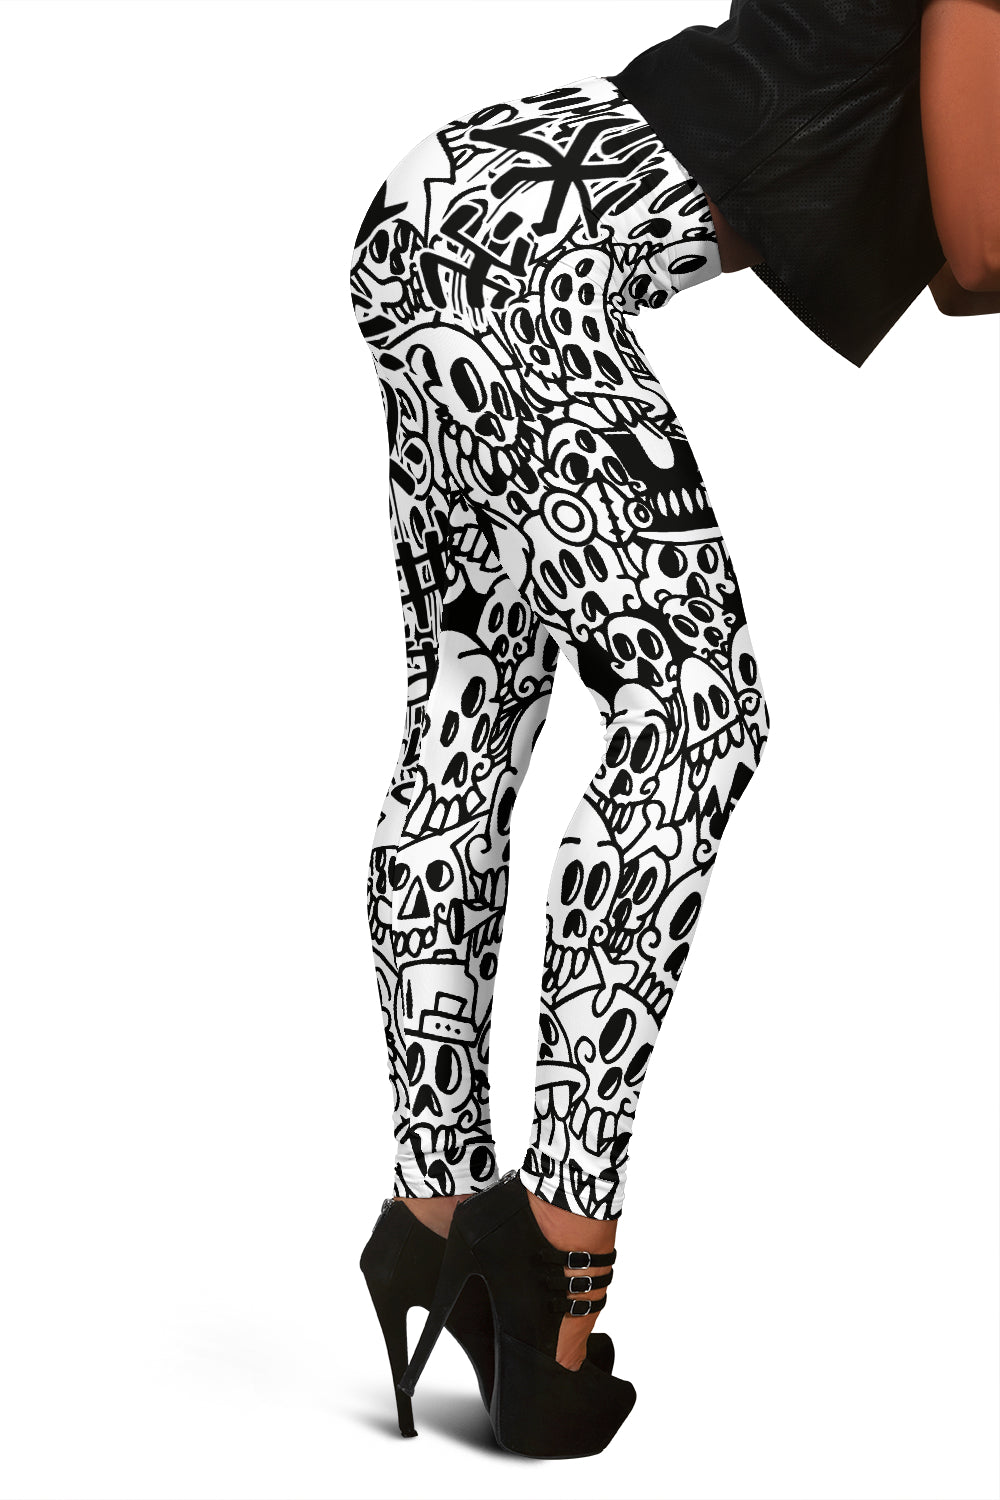 All Eyes Women's Leggings